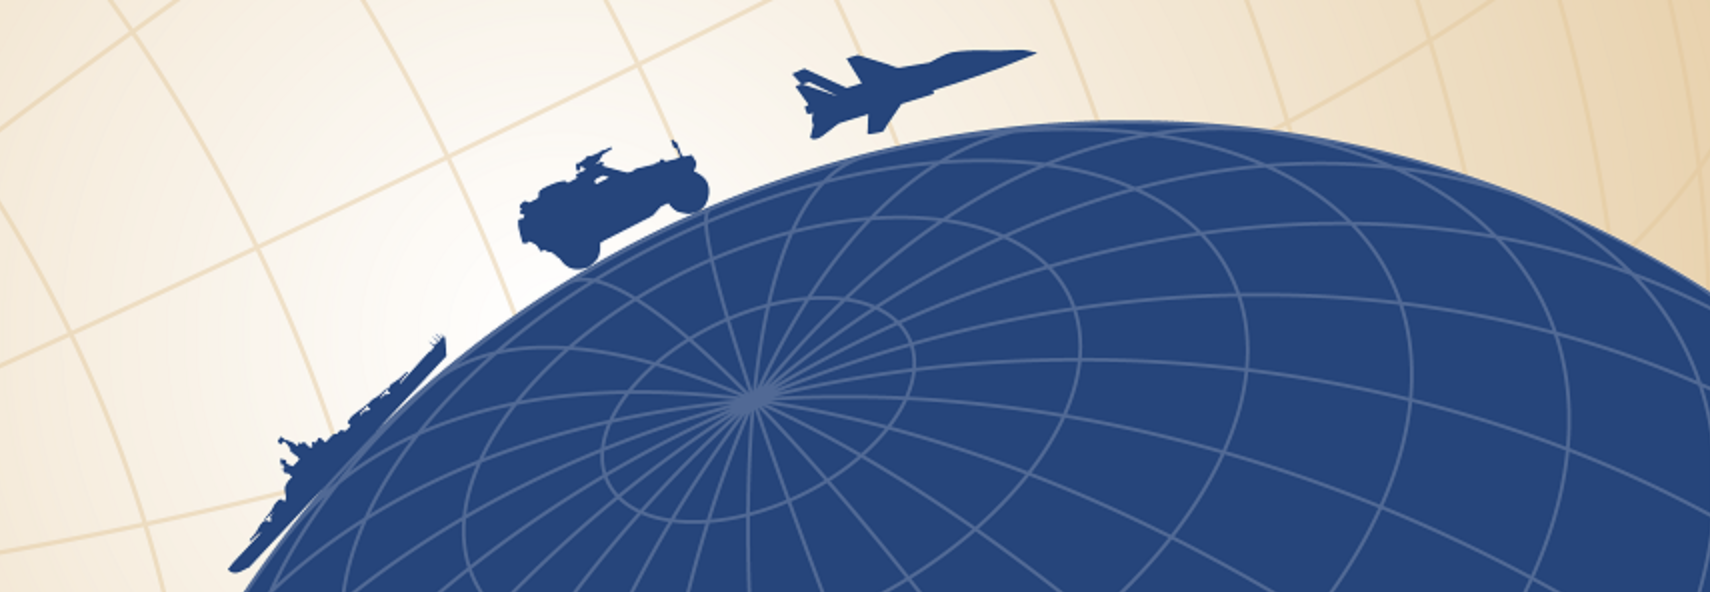 Call for Abstracts for ION's Joint Navigation Conference